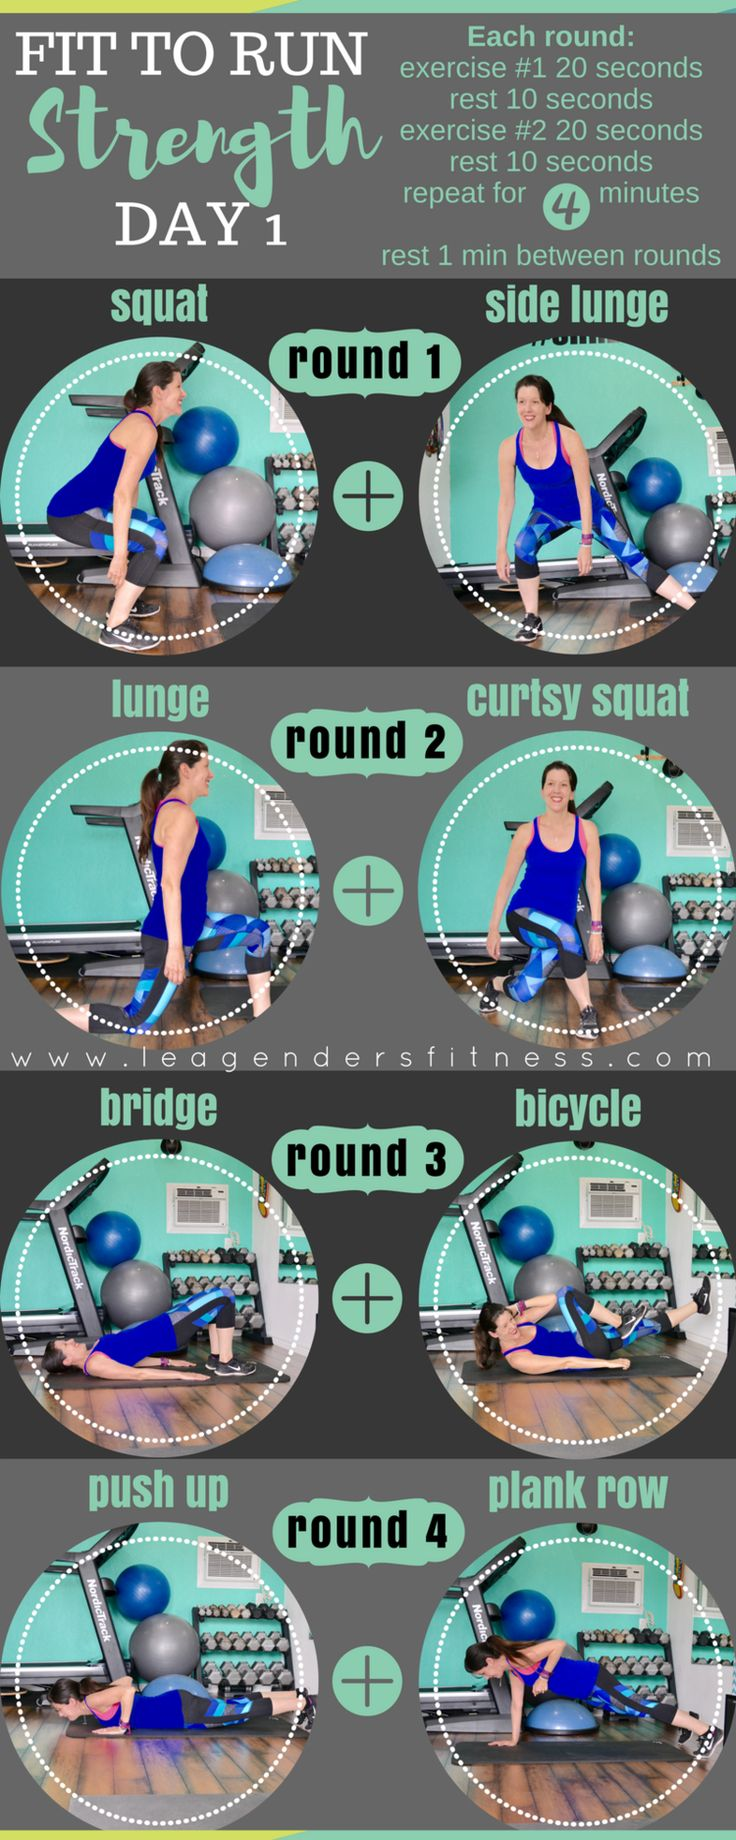 Fit to run strength training for runners - save to Pinterest - subscribe to download printable version of this workout